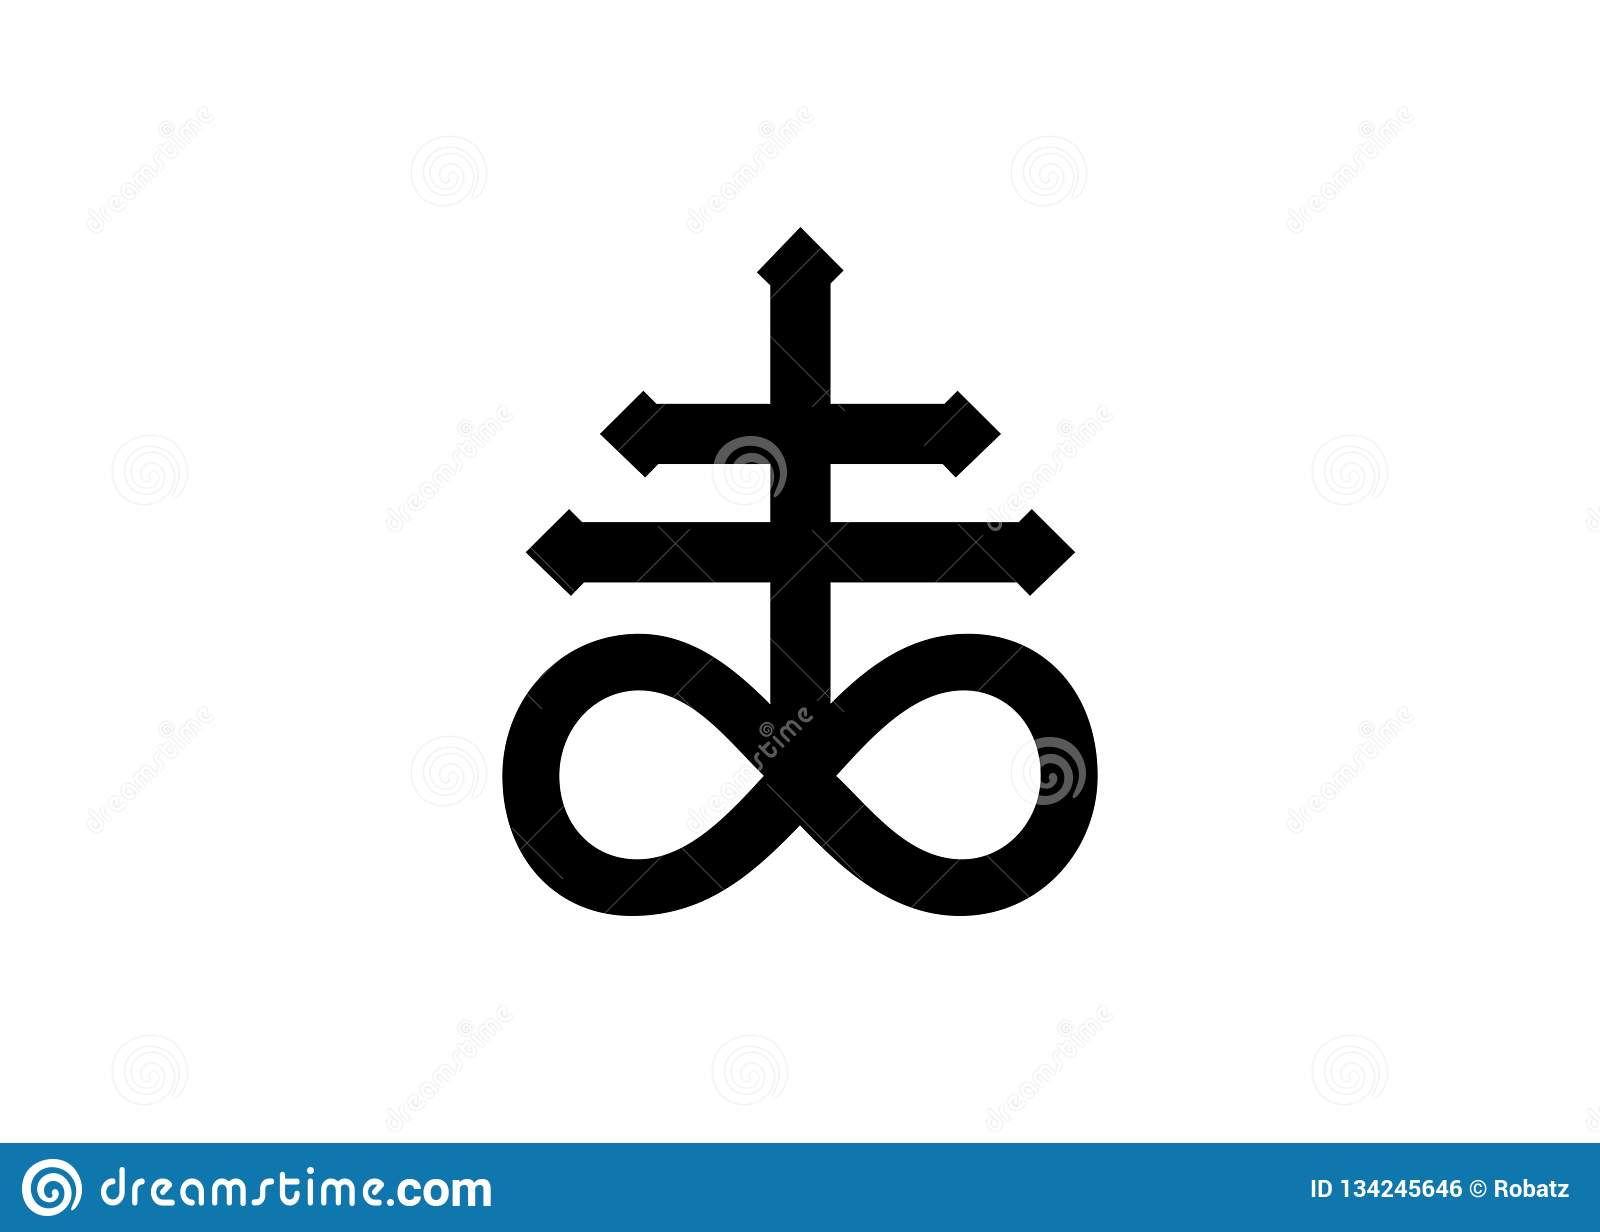 c8f9f7d21cd55 Leviathan Cross alchemical symbol for sulphur, associated with the fire and  brimstone of Hell. Black and white isolated illustration.